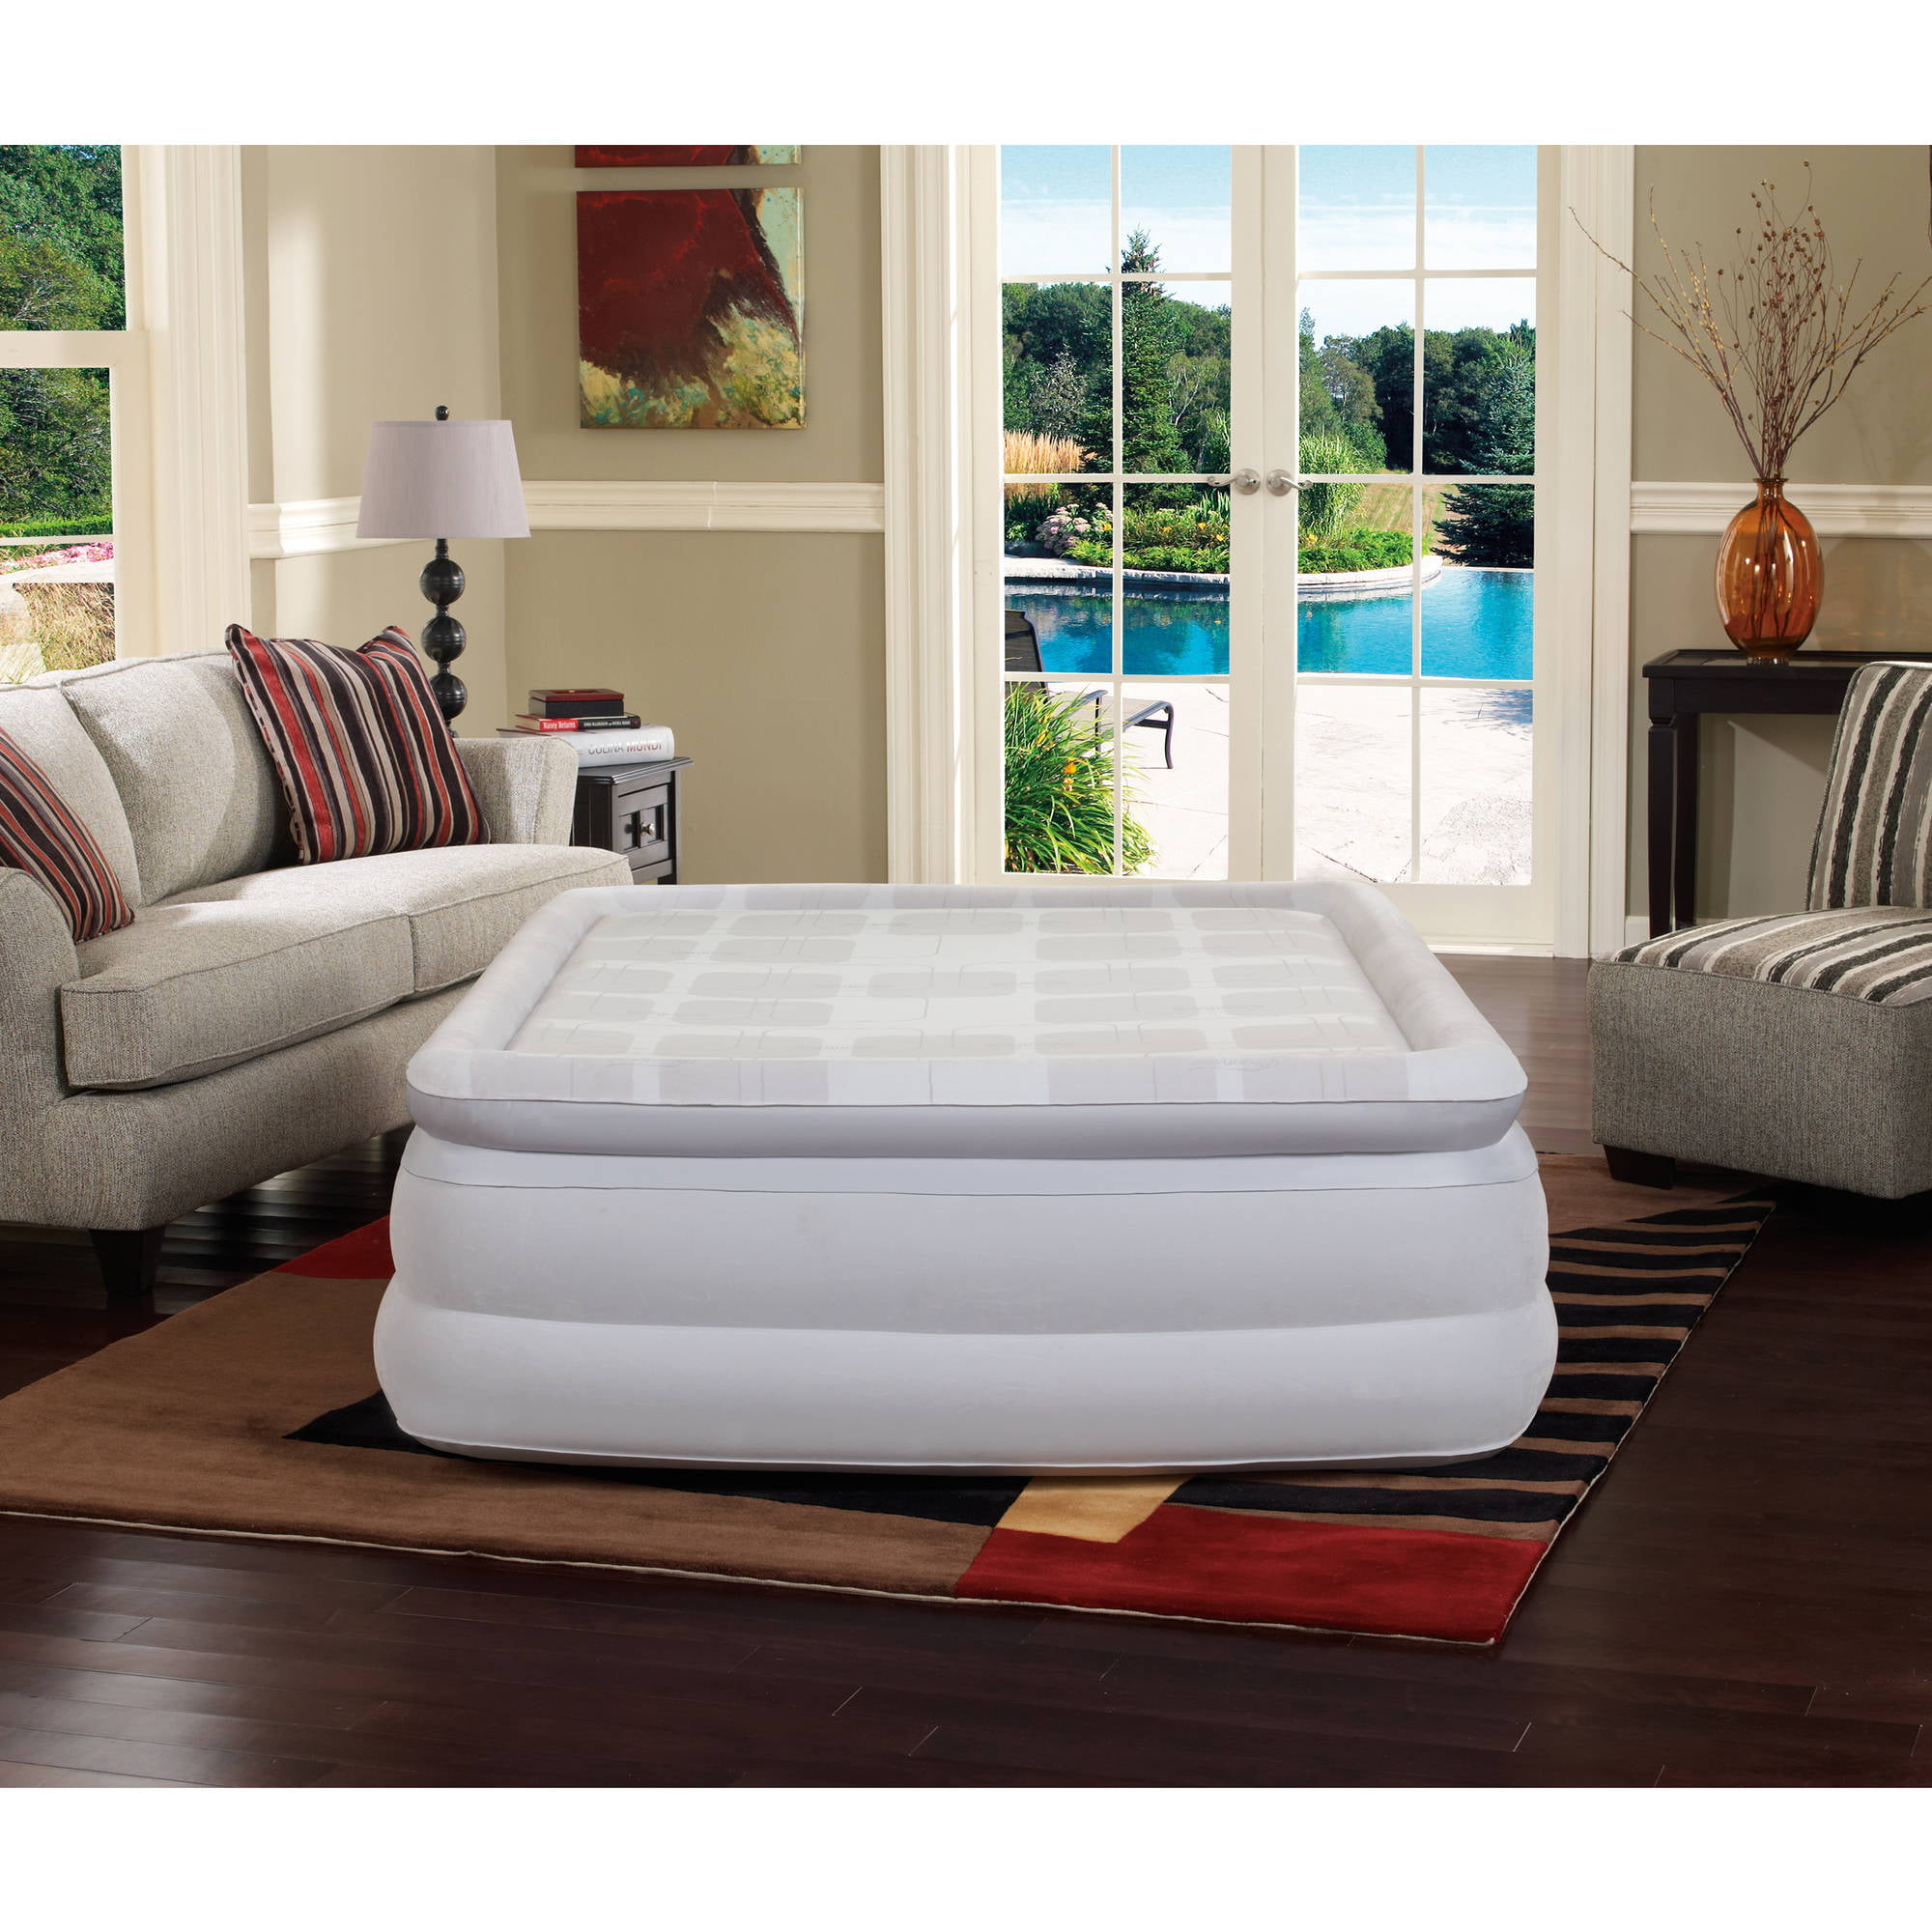 Bed rest pillow walmart - Simmons Beautyrest Memory Aire 18 Raised Queen Air Bed Mattress With Built In Pump Walmart Com